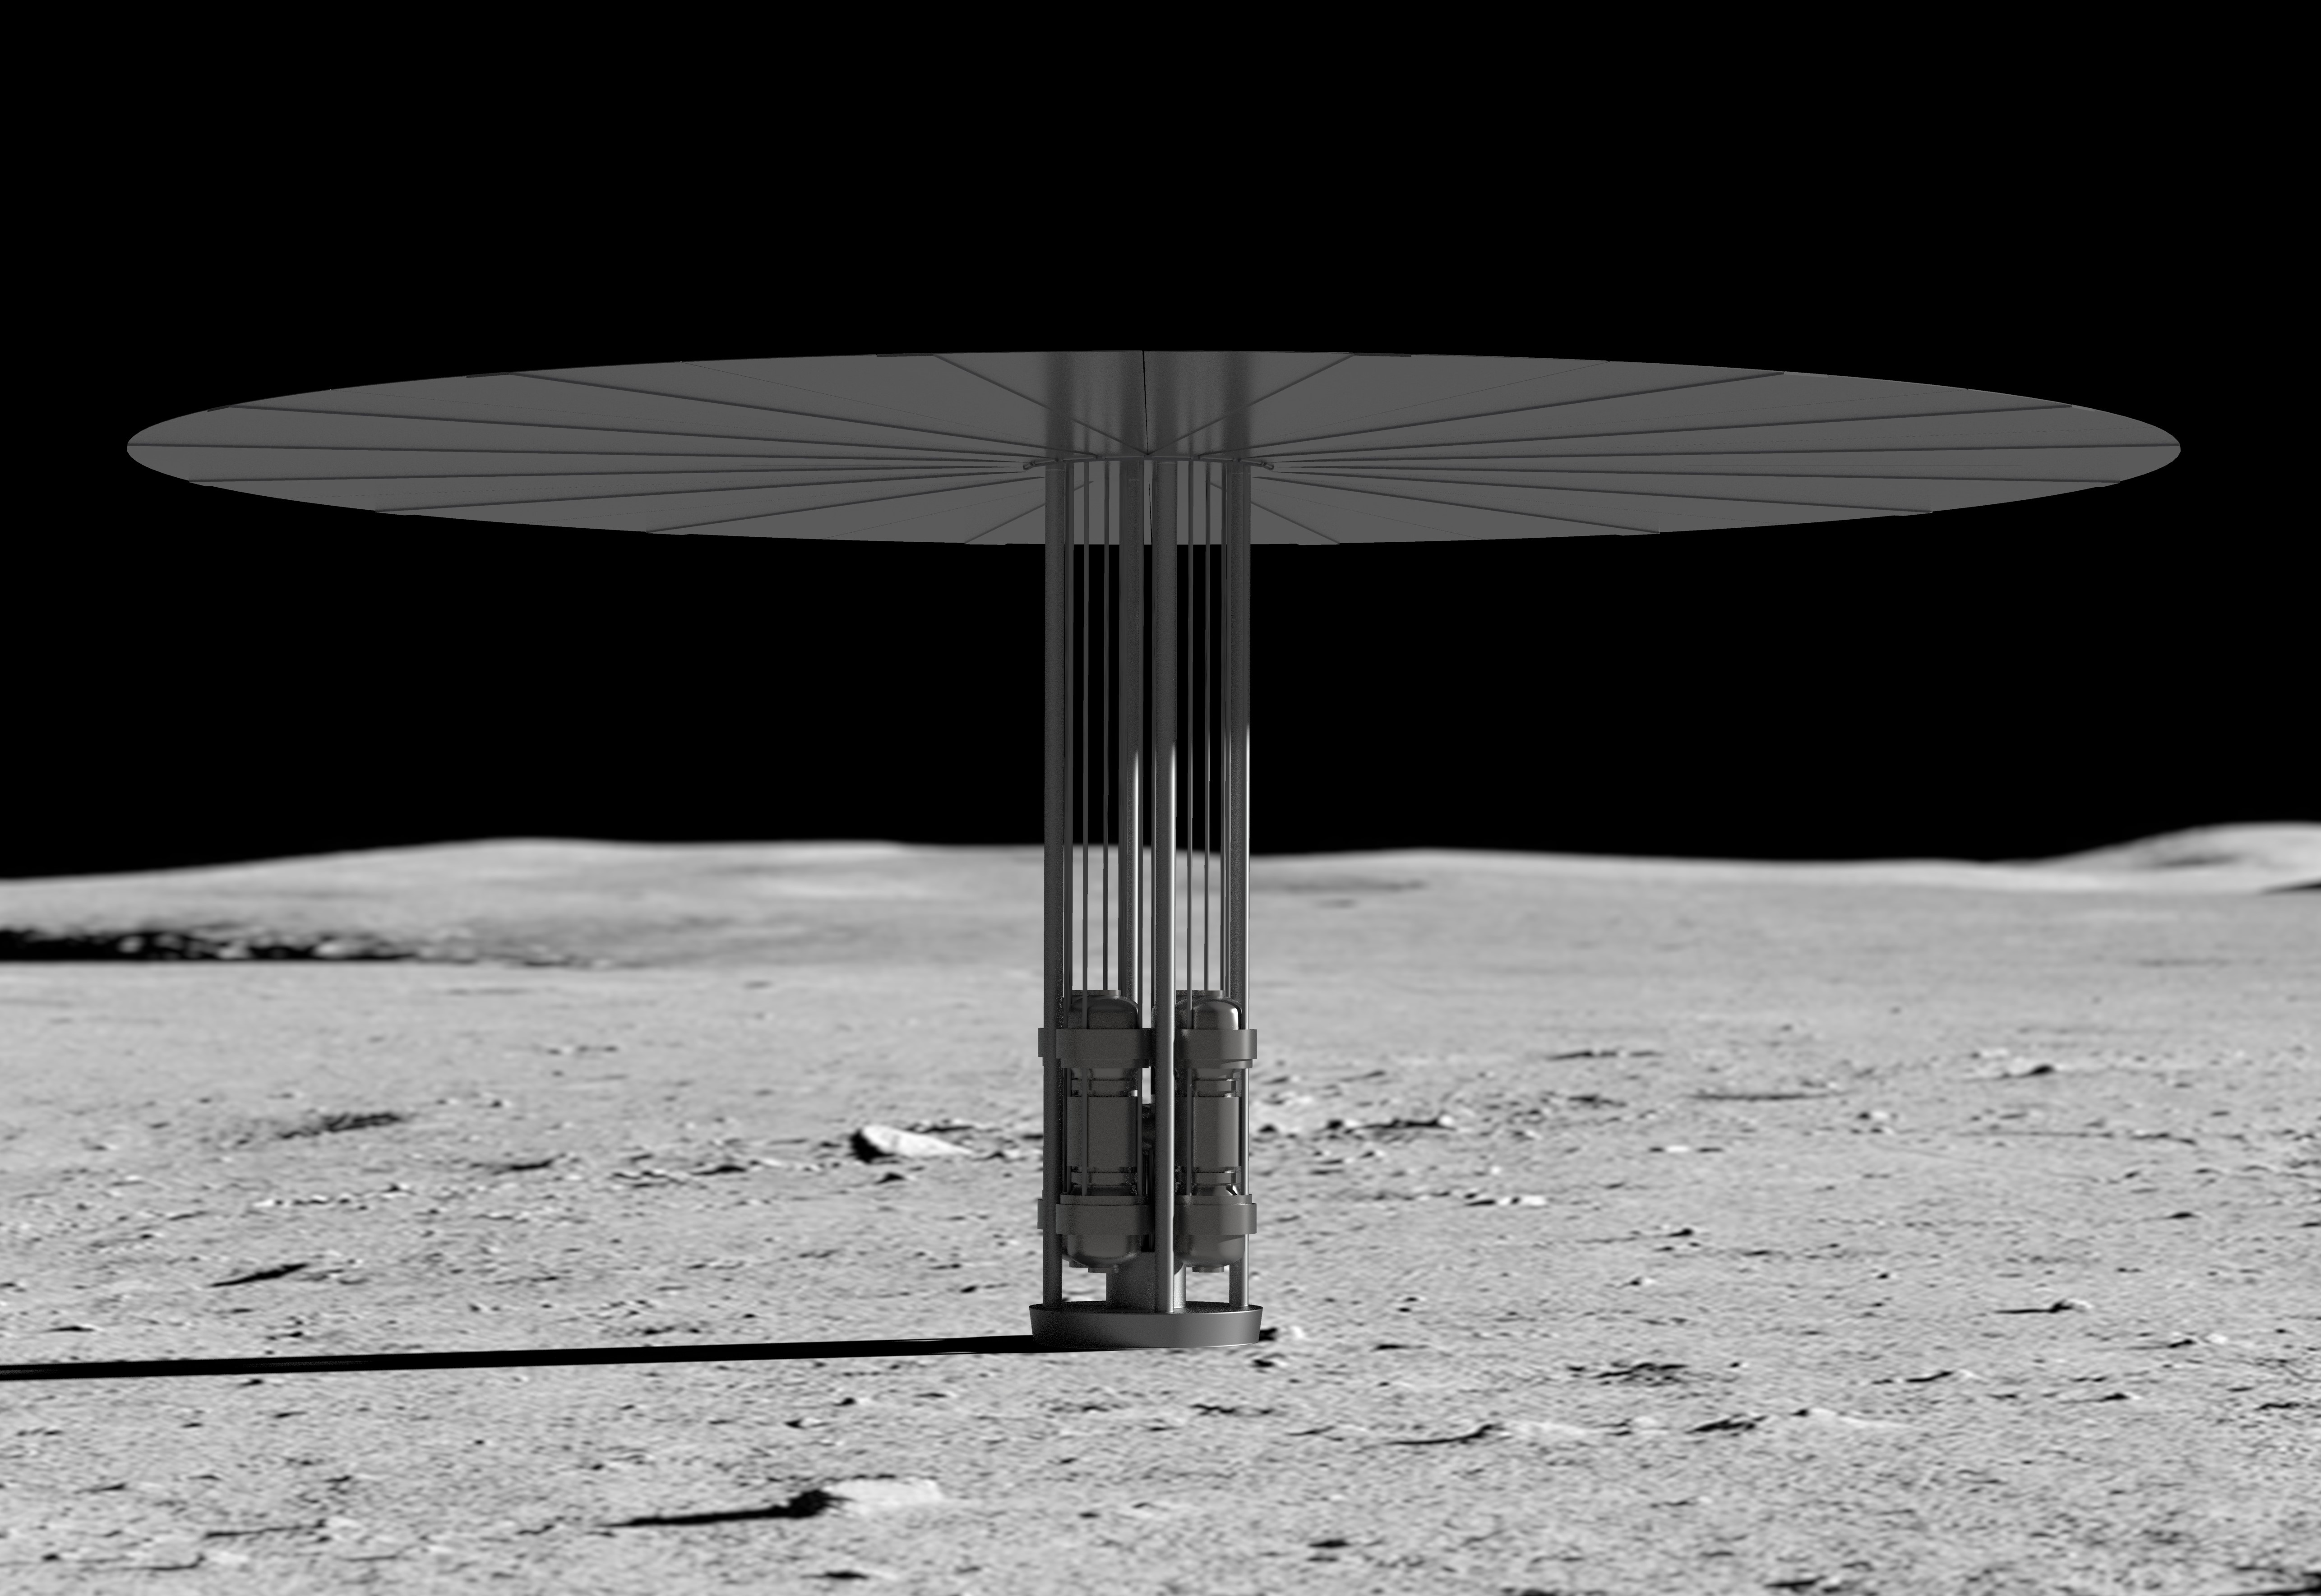 Nuclear power on the moon? It could happen by 2028